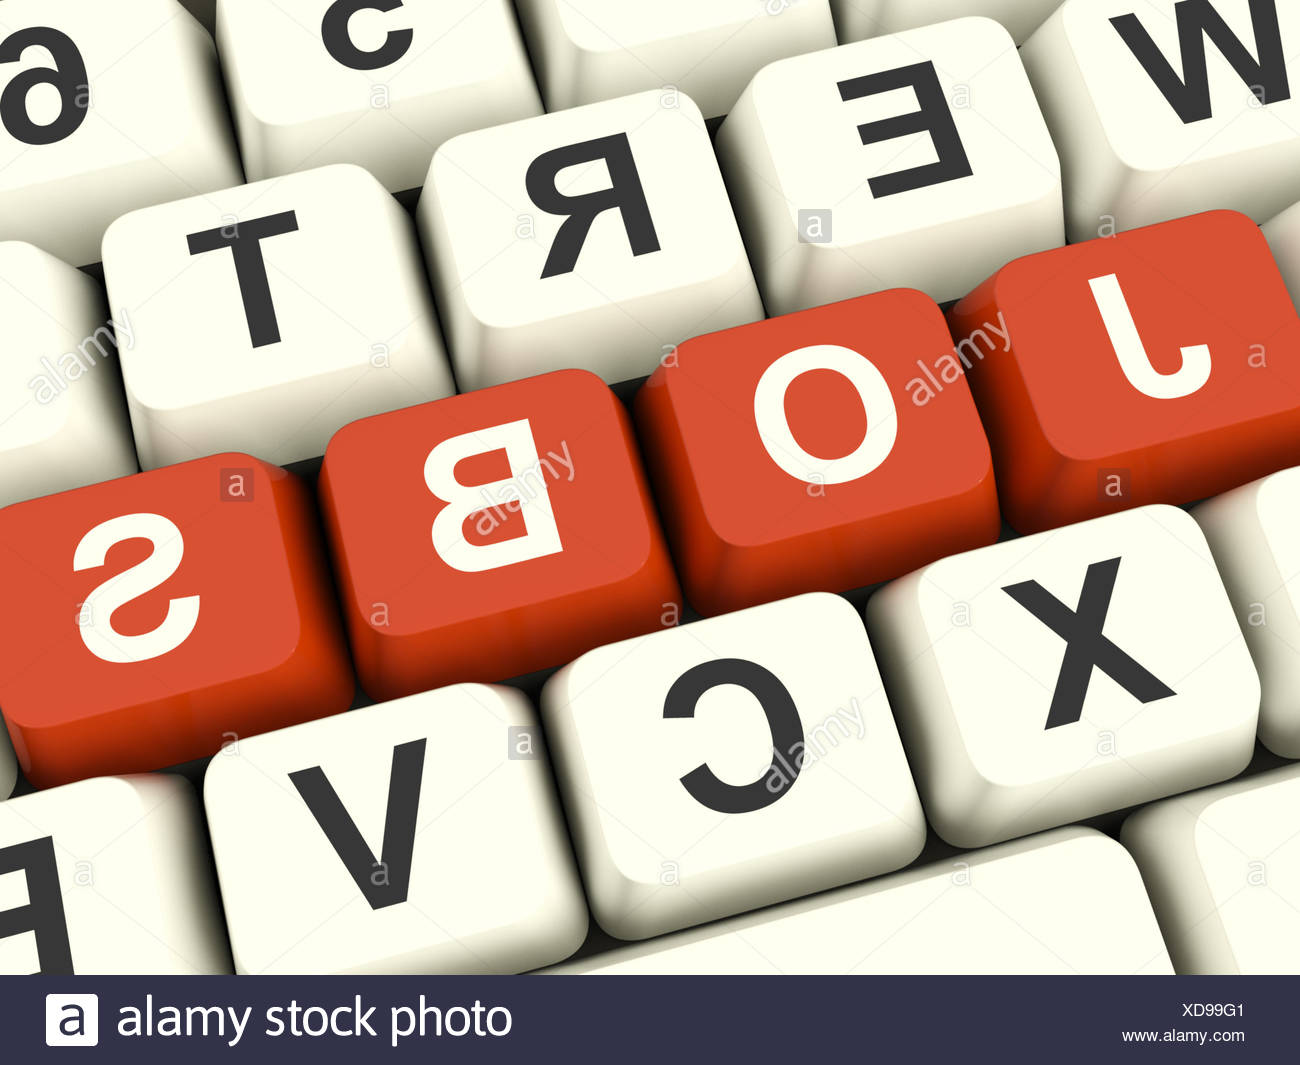 Jobs Red Computer Keys Showing Work And Careers - Stock Image